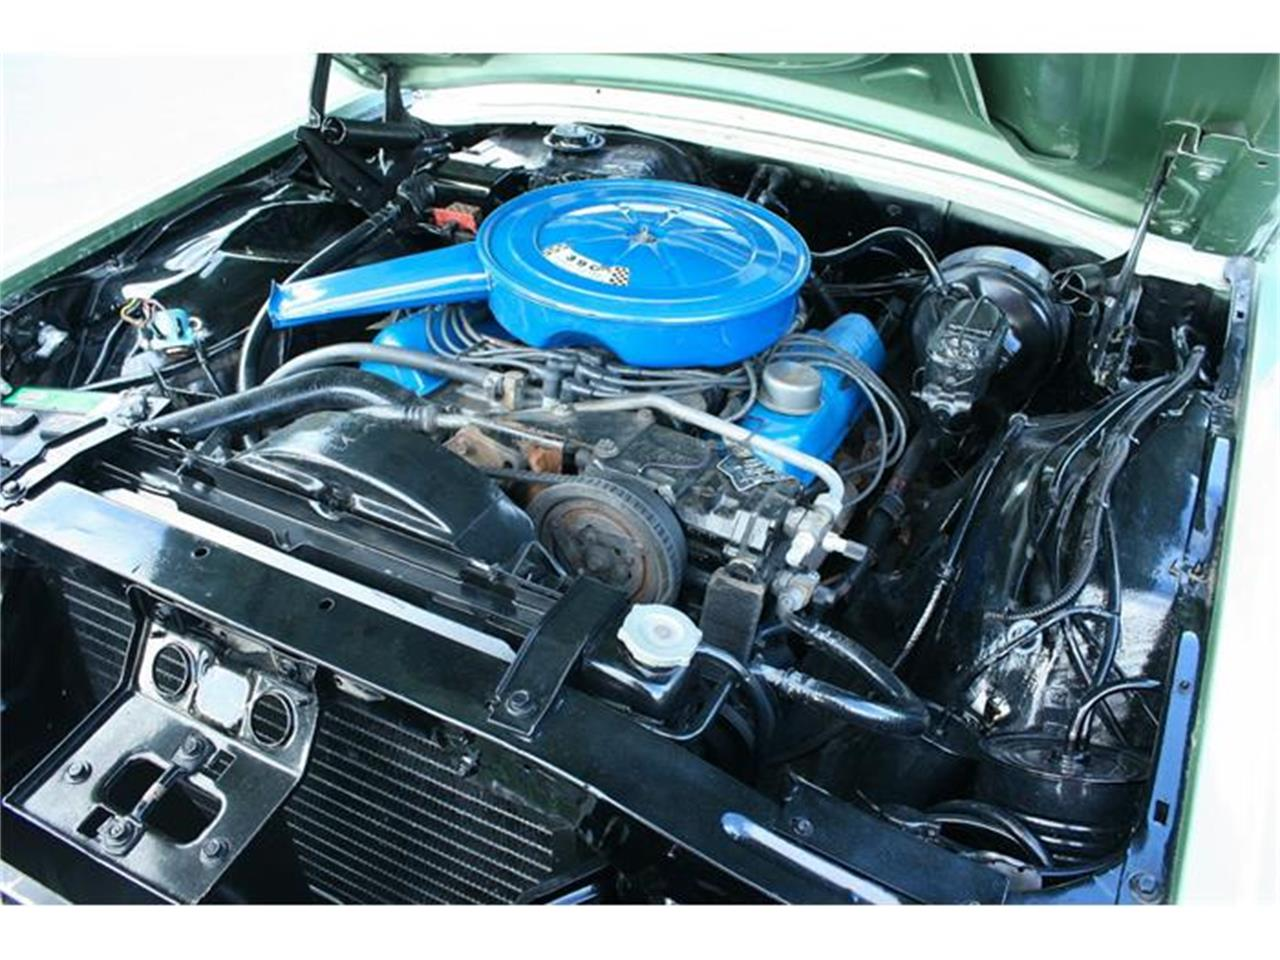 Large Picture of Classic '67 Ford Thunderbird located in Florida Offered by MJC Classic Cars - ITN1